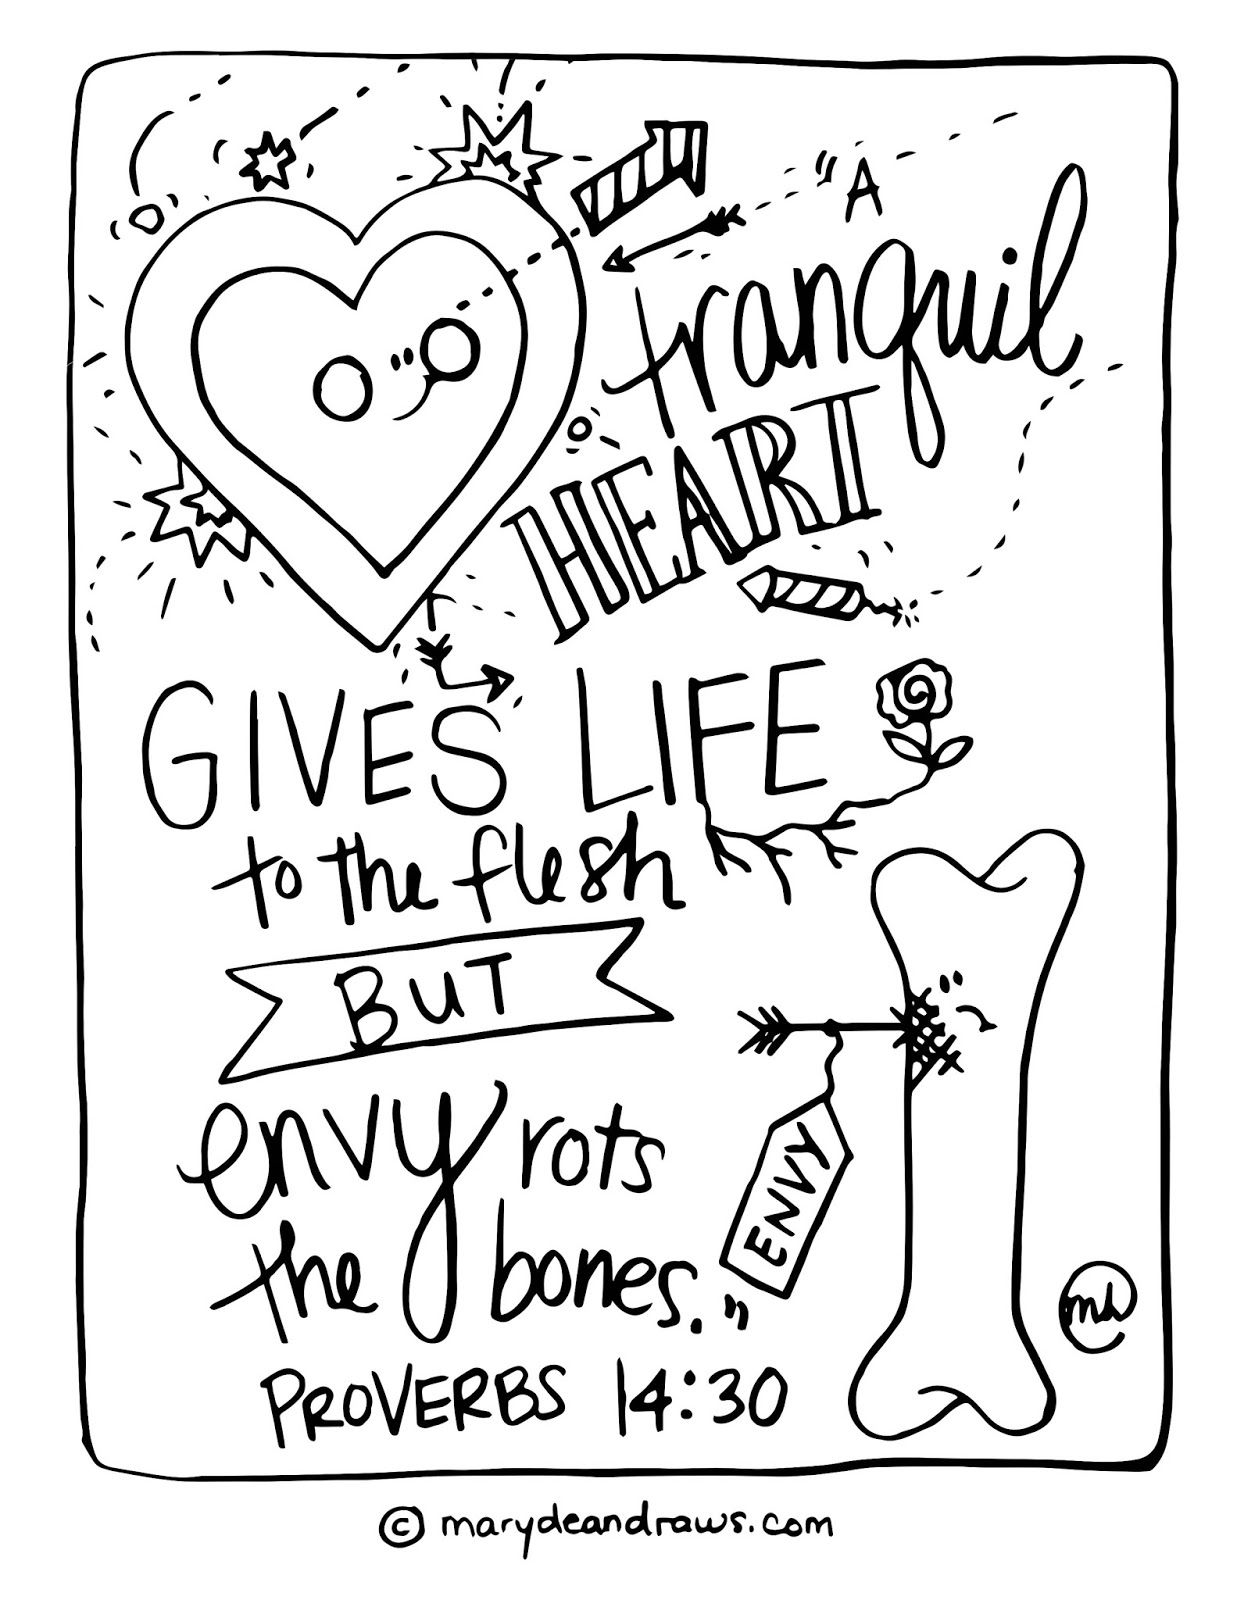 bible verse coloring sheets bible verse coloring page image by laurie salveson on verse bible coloring sheets